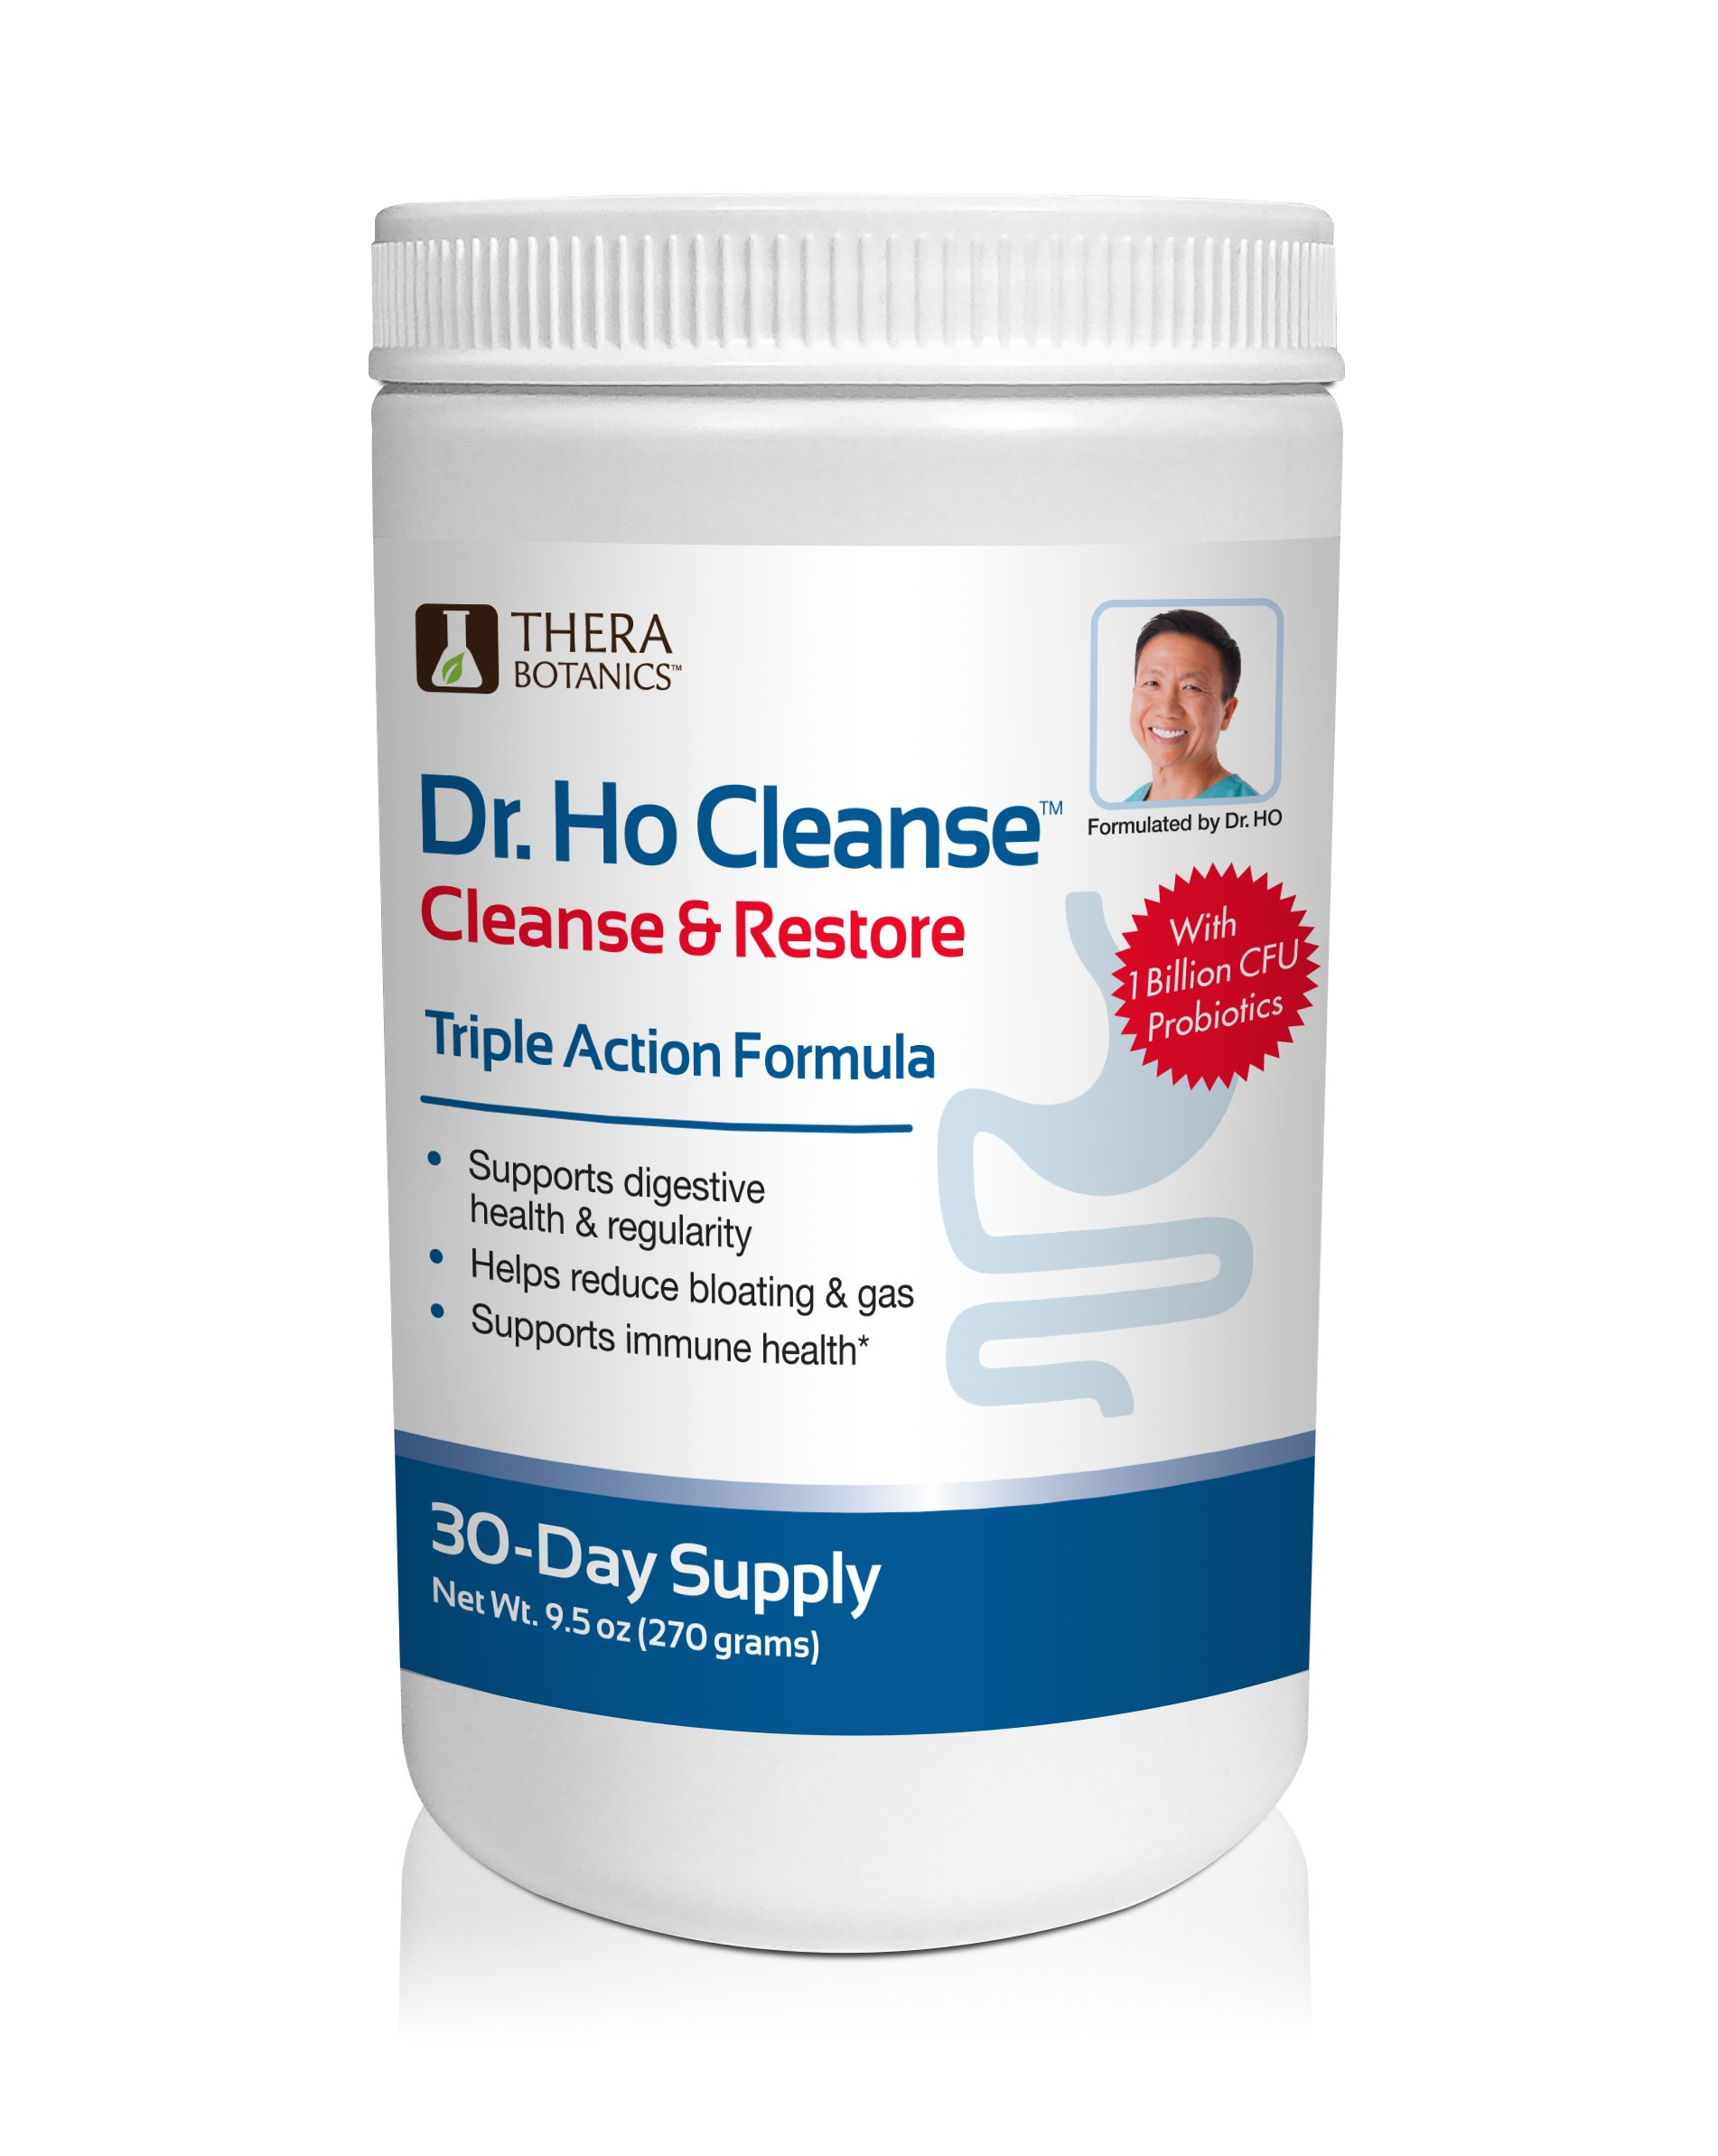 Dr. Ho Cleanse & Detox-Eliminate Built-up Toxins and Waste; Relieve Discomfort from Constipation, Gas, & Upset Stomach; Feel Lighter, Slimmer & Energized